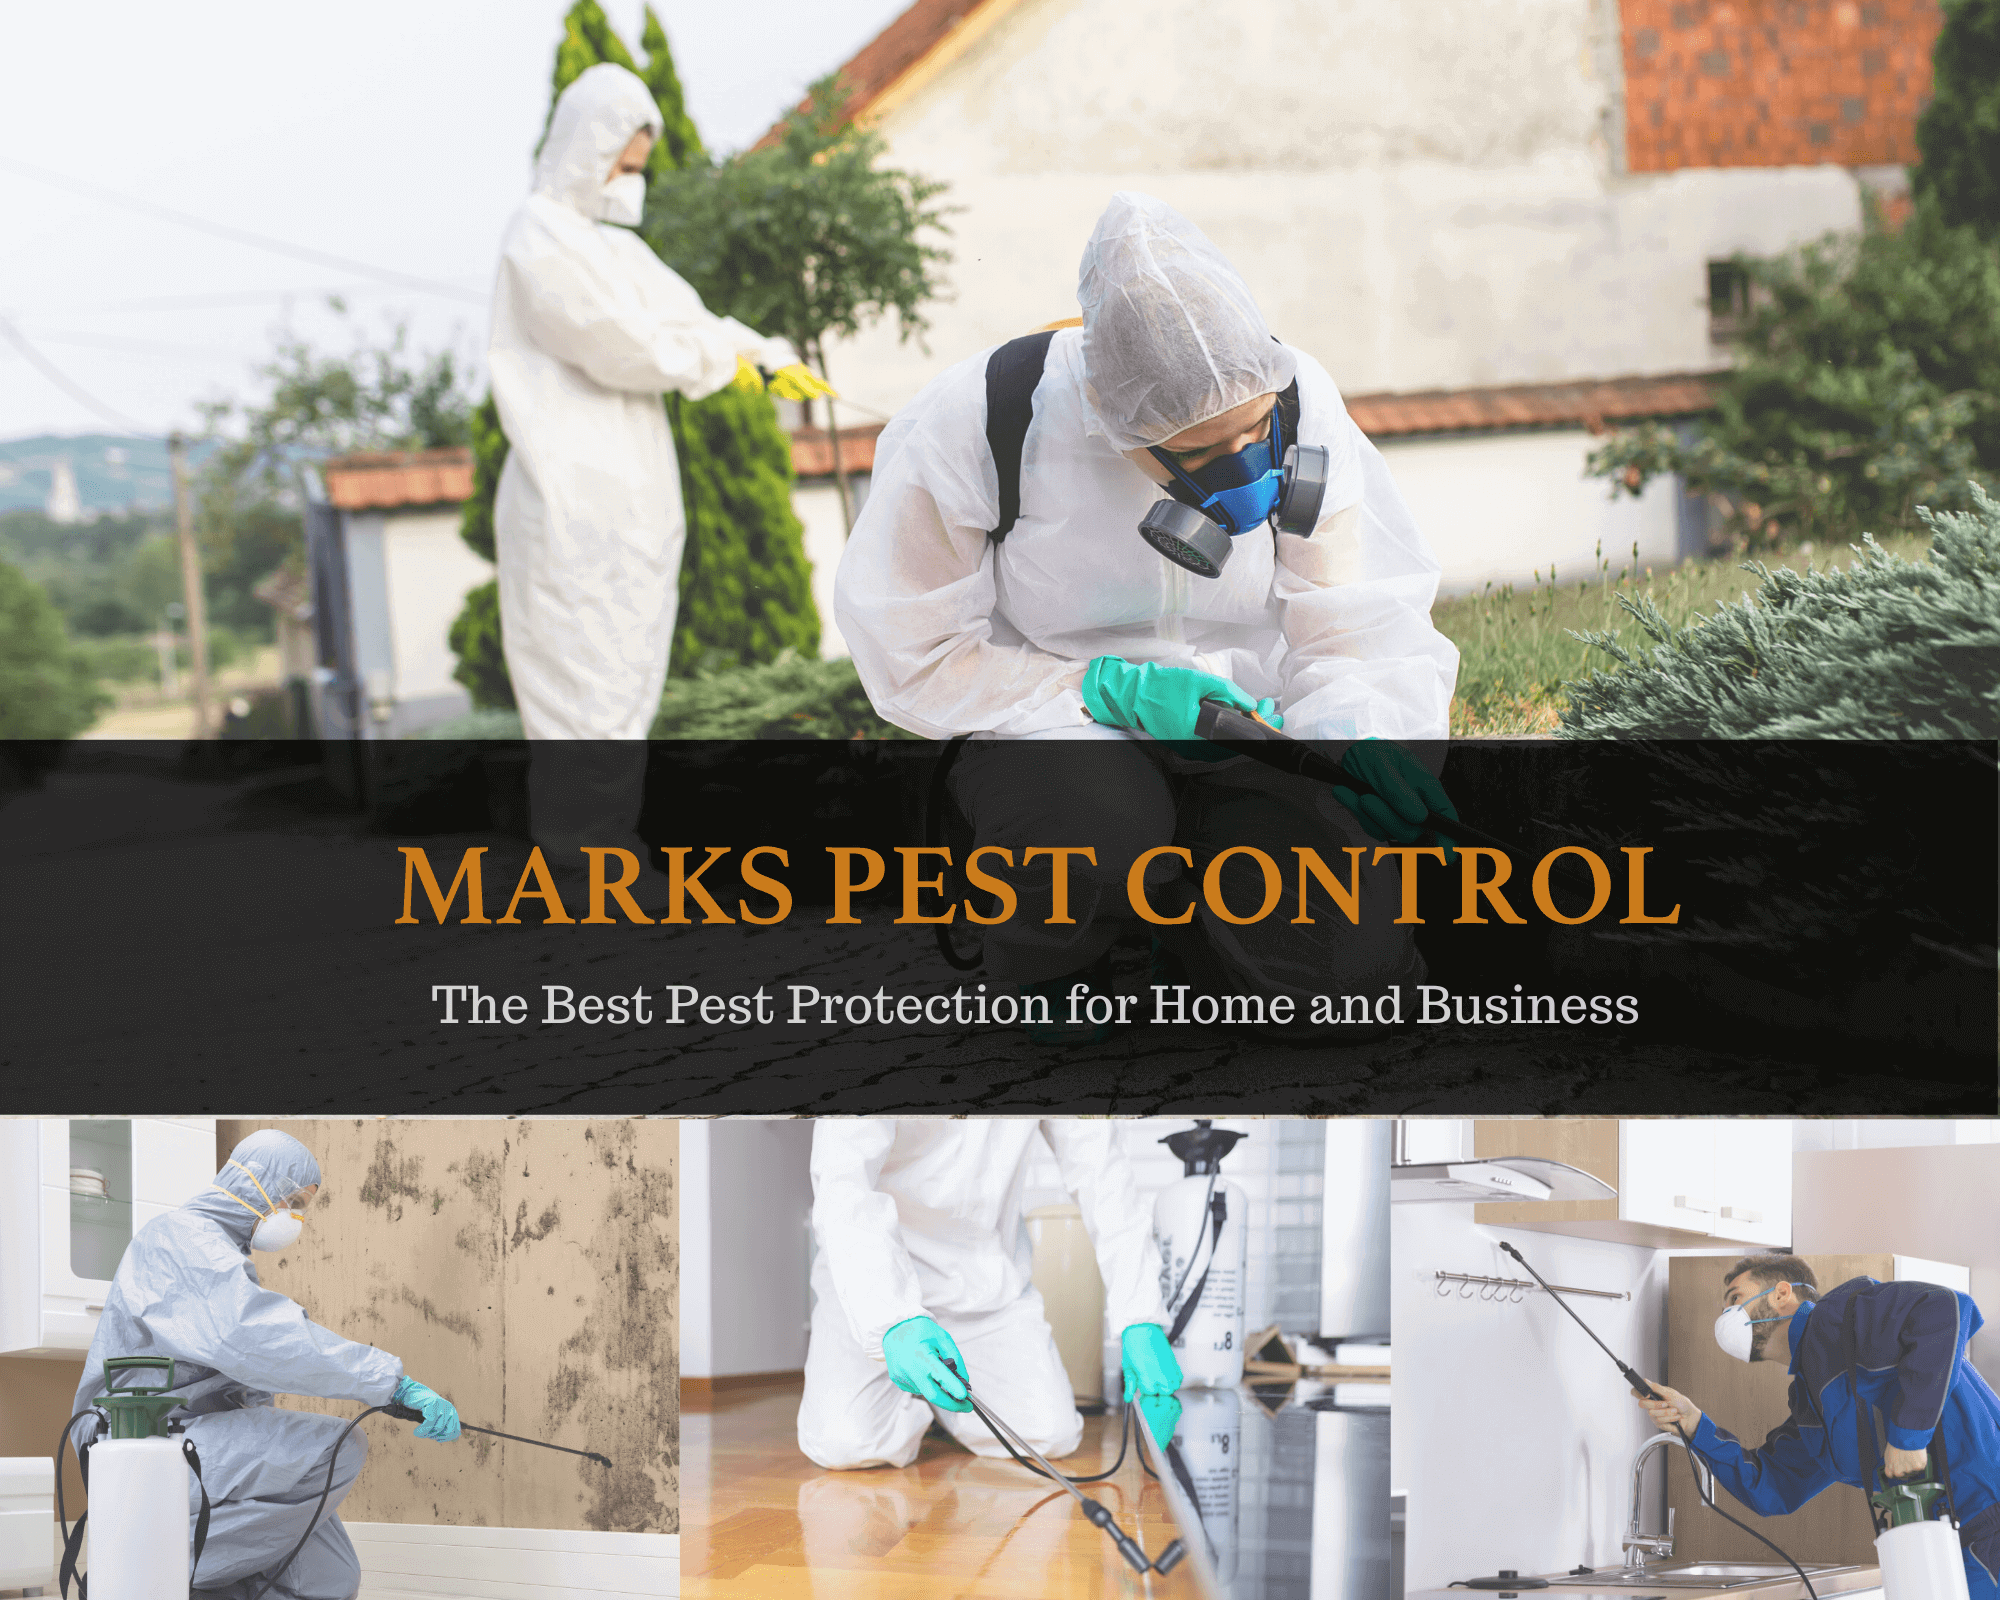 Pest Control Services for Your Home